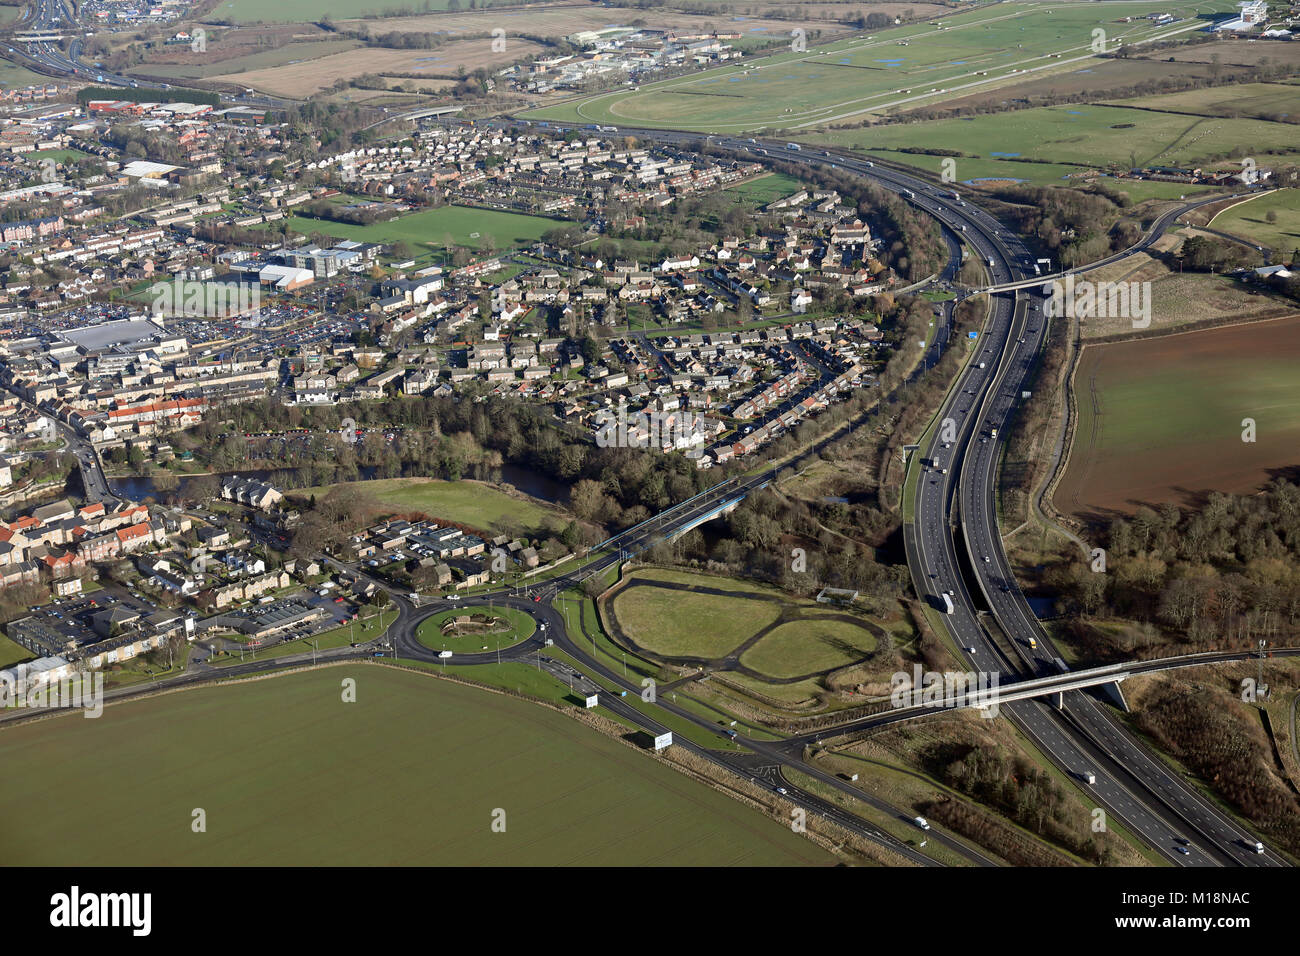 aerial view of the A1 motorway by-pass at Wetherby, West Yorkshire, UK - Stock Image